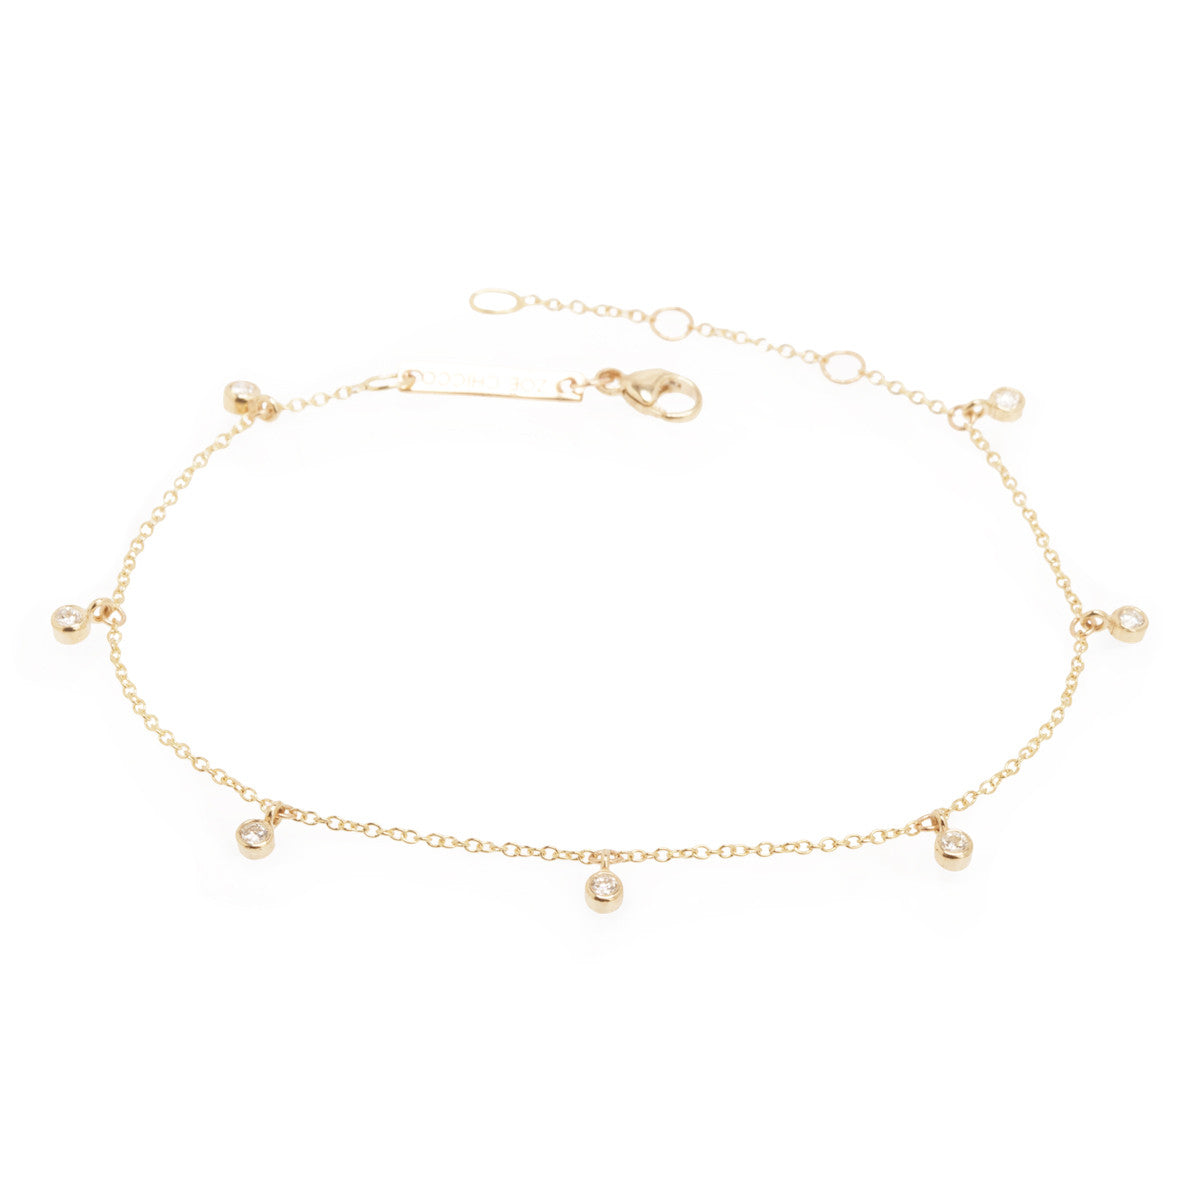 Zoë Chicco 14k Gold Dangling Diamond Anklet gKq84w